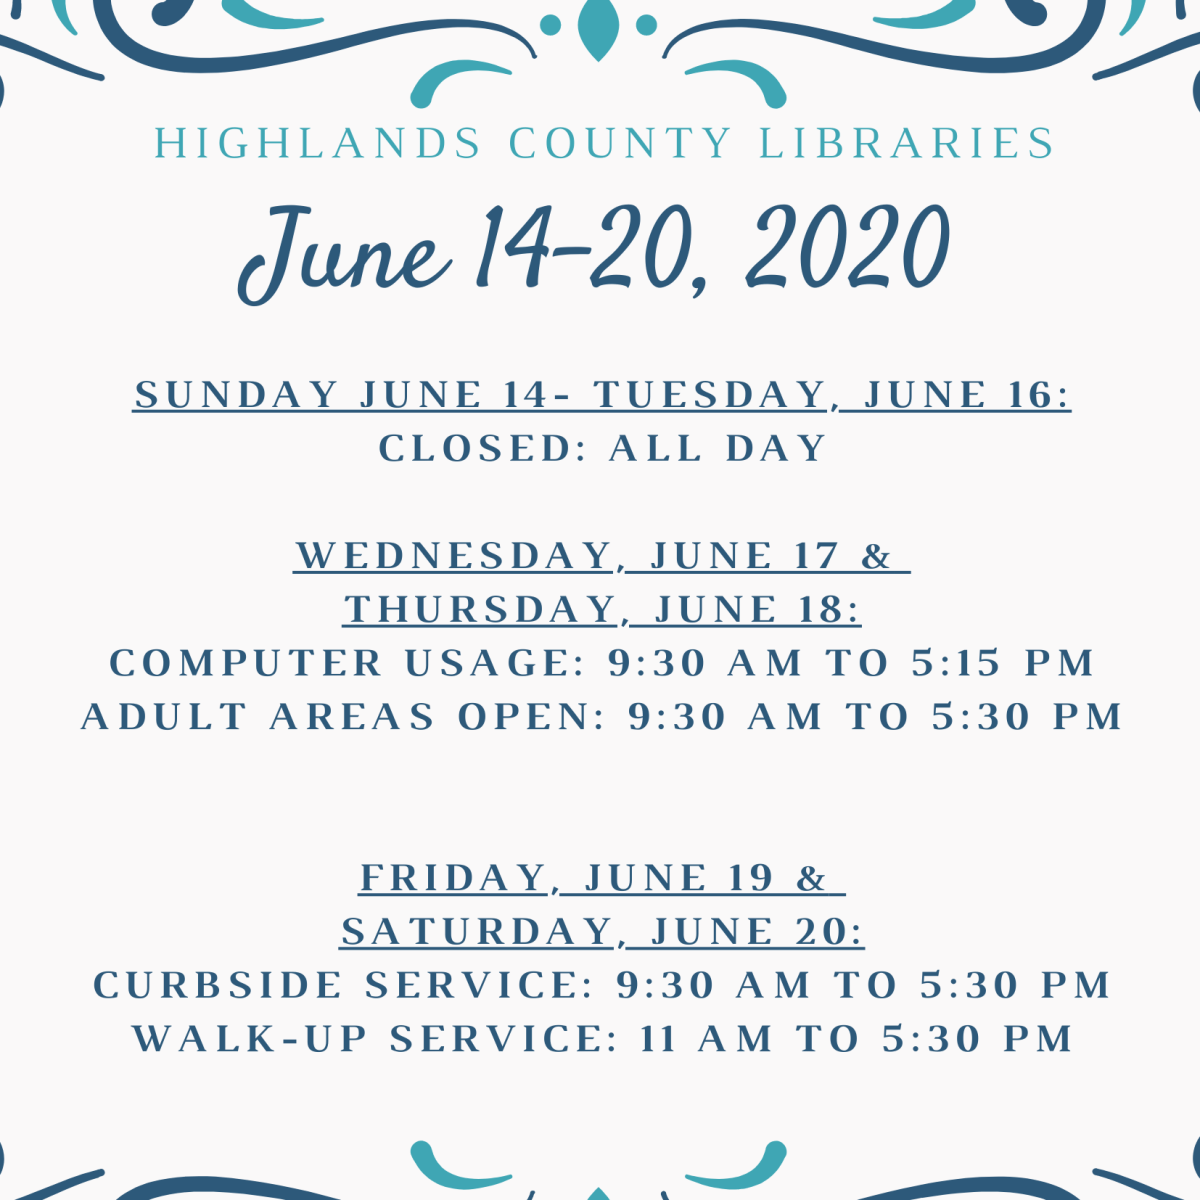 schedule for the Highlands County Libraries June 14-20, 2020